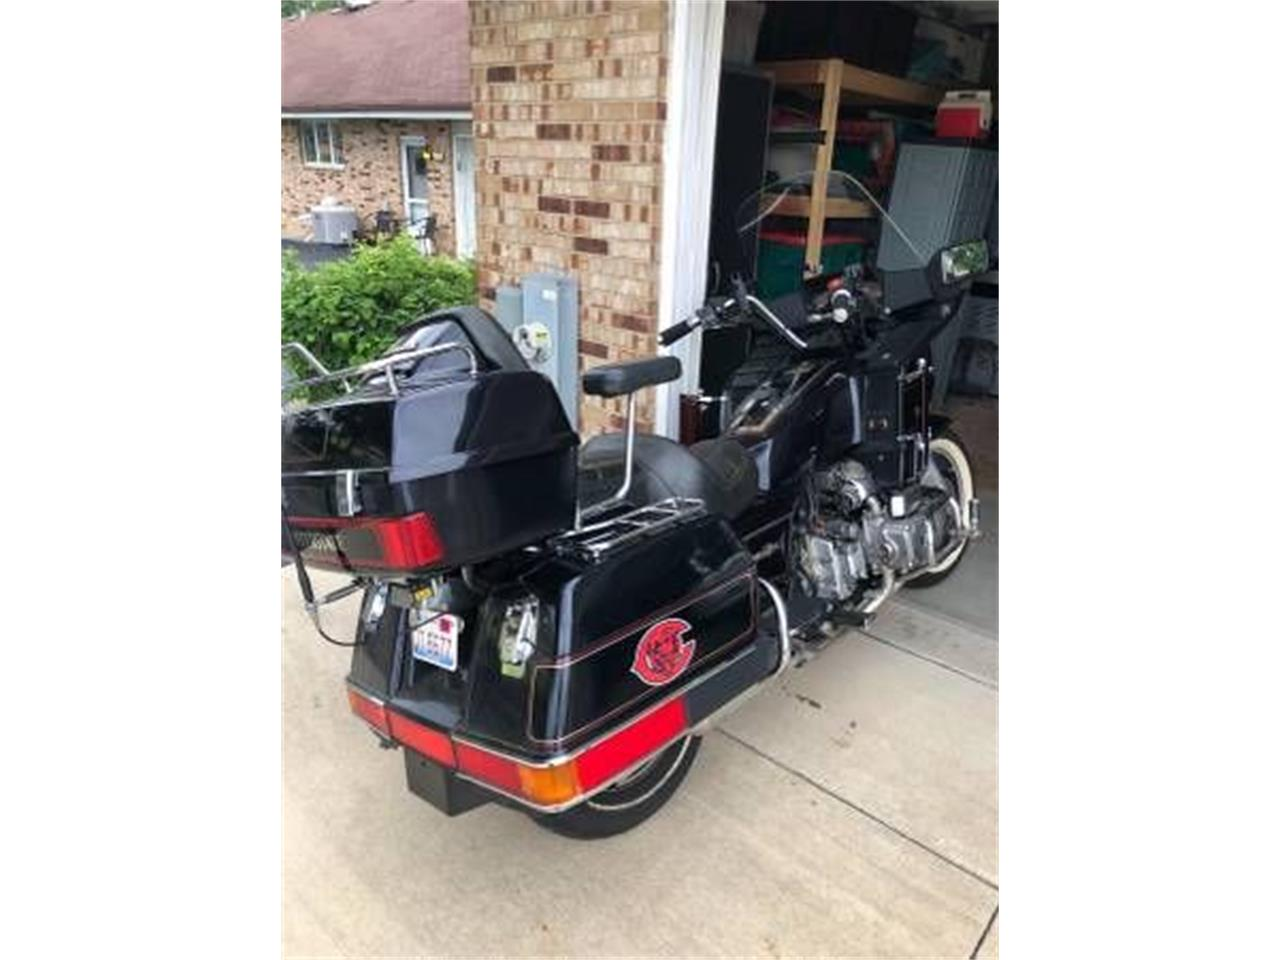 Large Picture of '98 Goldwing located in Michigan - $3,795.00 Offered by Classic Car Deals - R0KJ